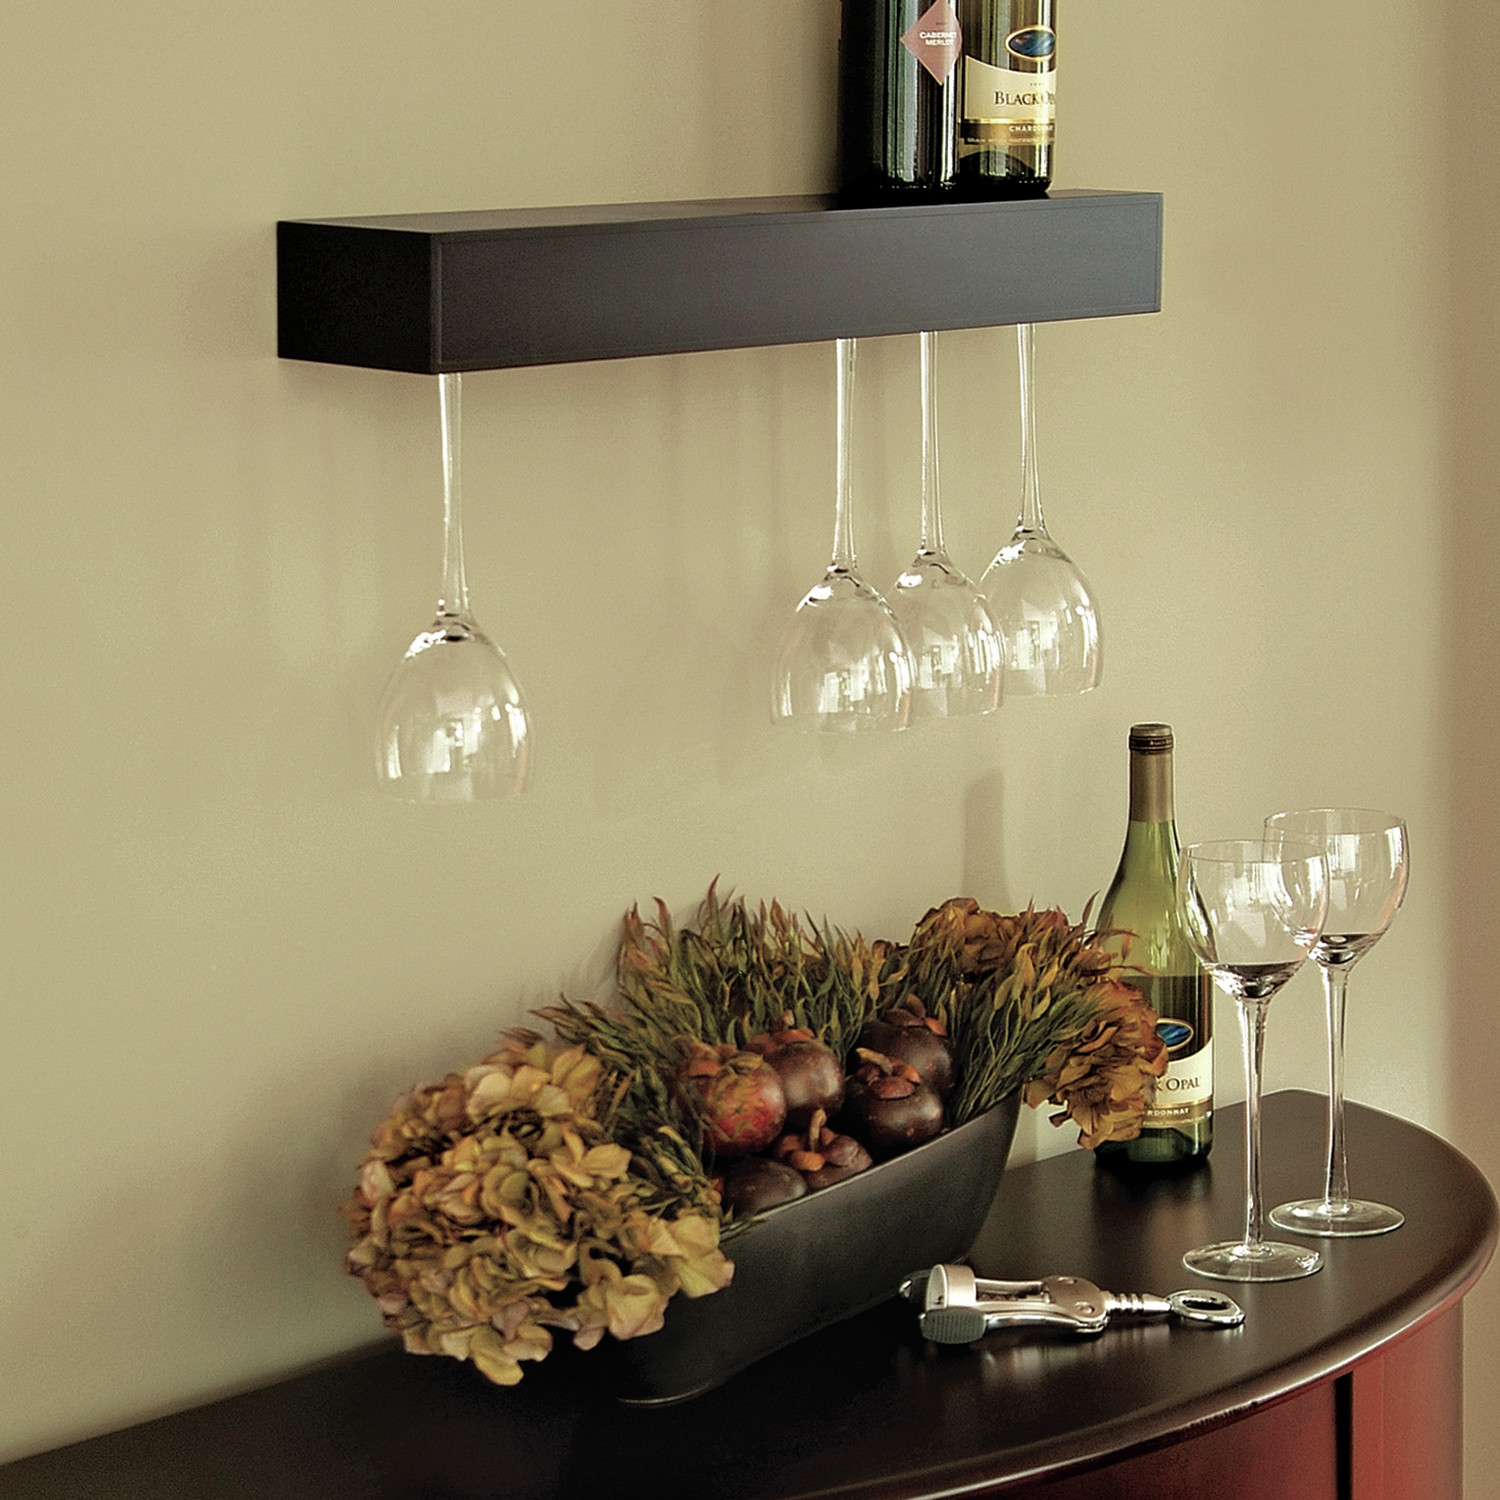 Cool Wall Mounted Wine Glass Holder | HomesFeed